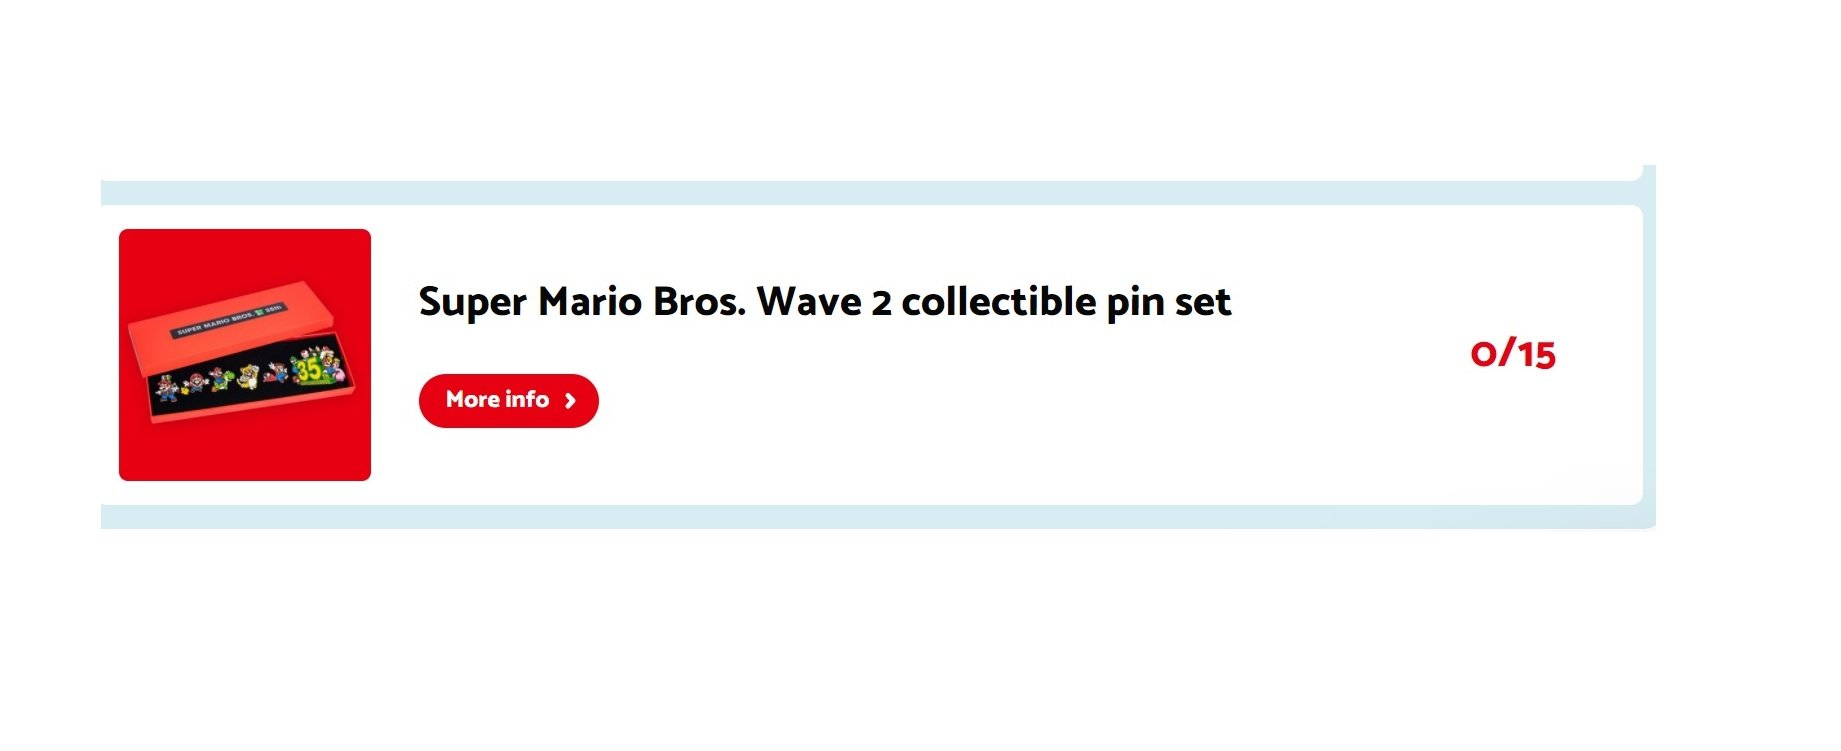 The process for the second Mario pin set was somehow worse than the first screenshot